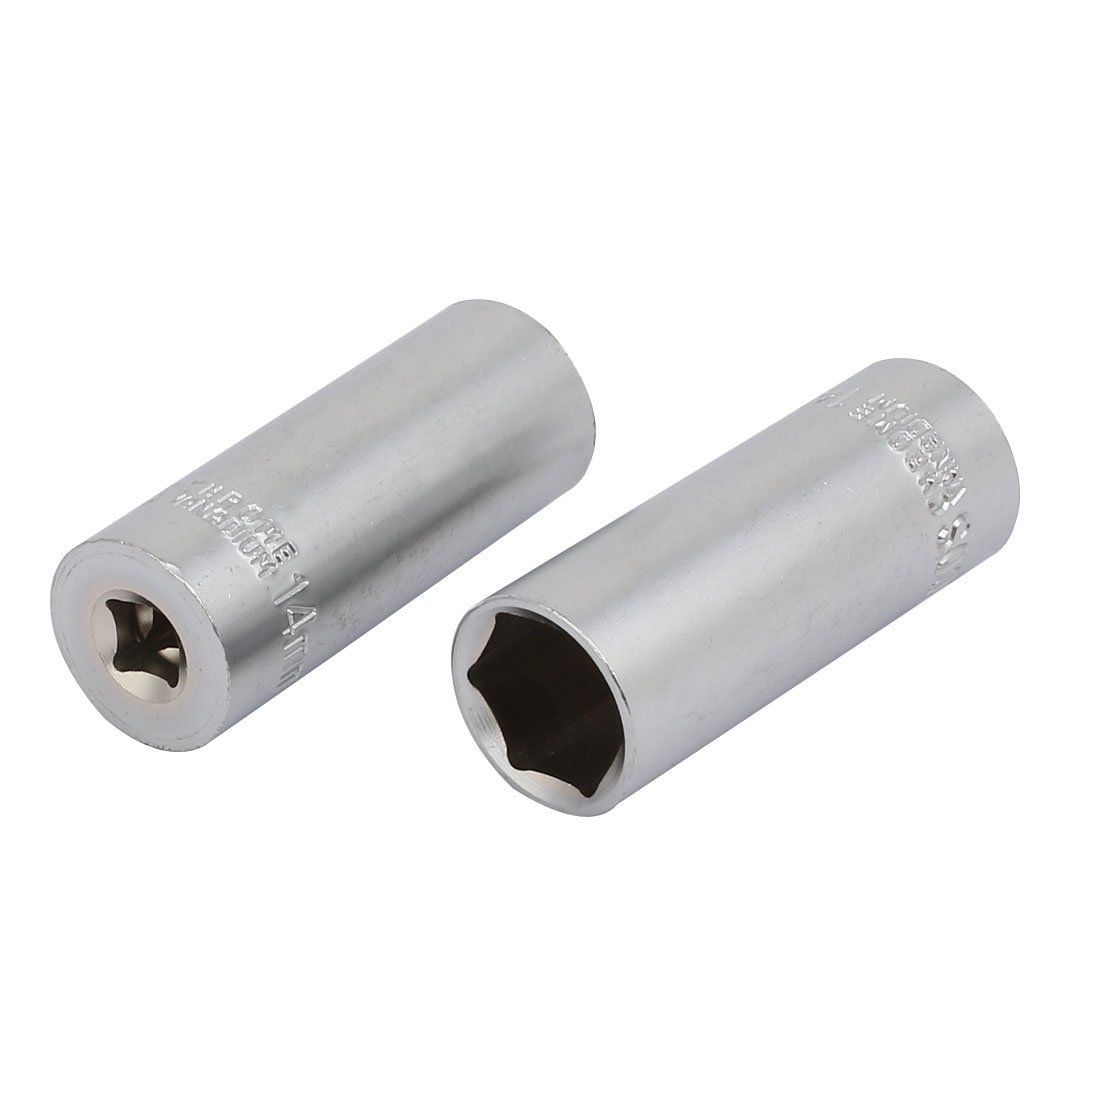 1/4-inch Square Drive 14mm Hex 6 Point Impact Socket Silver Tone 2pcs